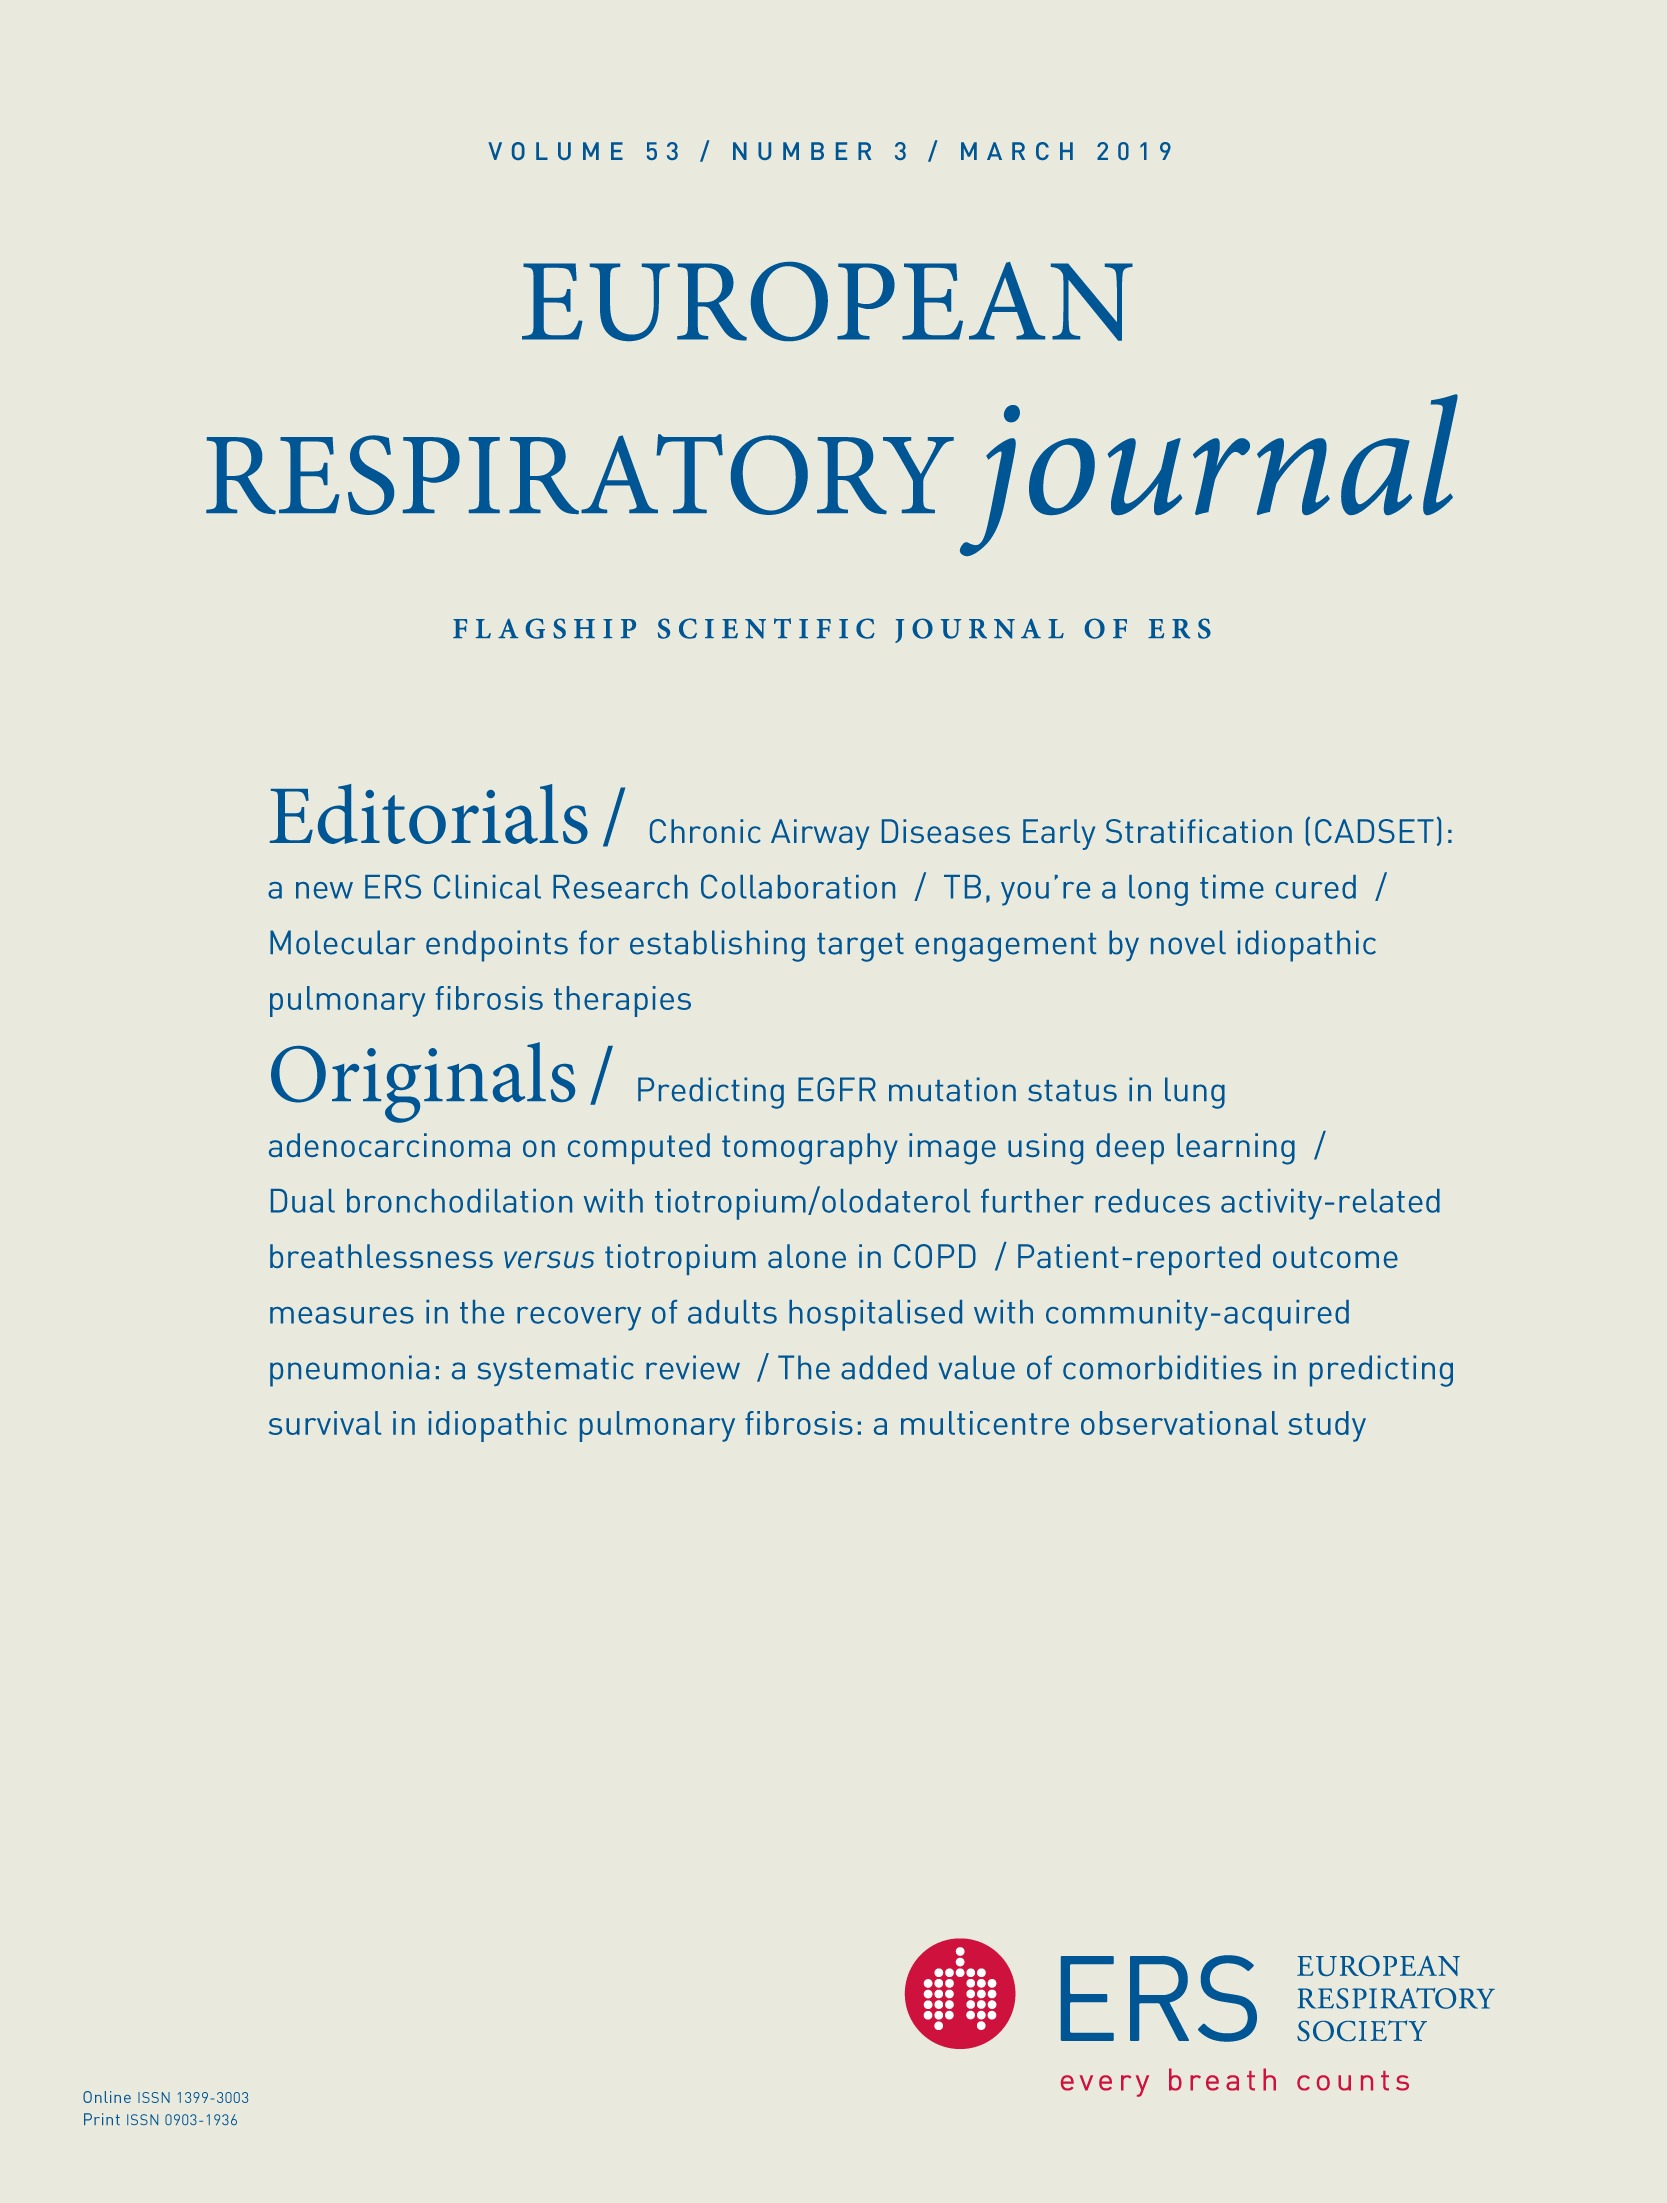 Predicting EGFR mutation status in lung adenocarcinoma on computed